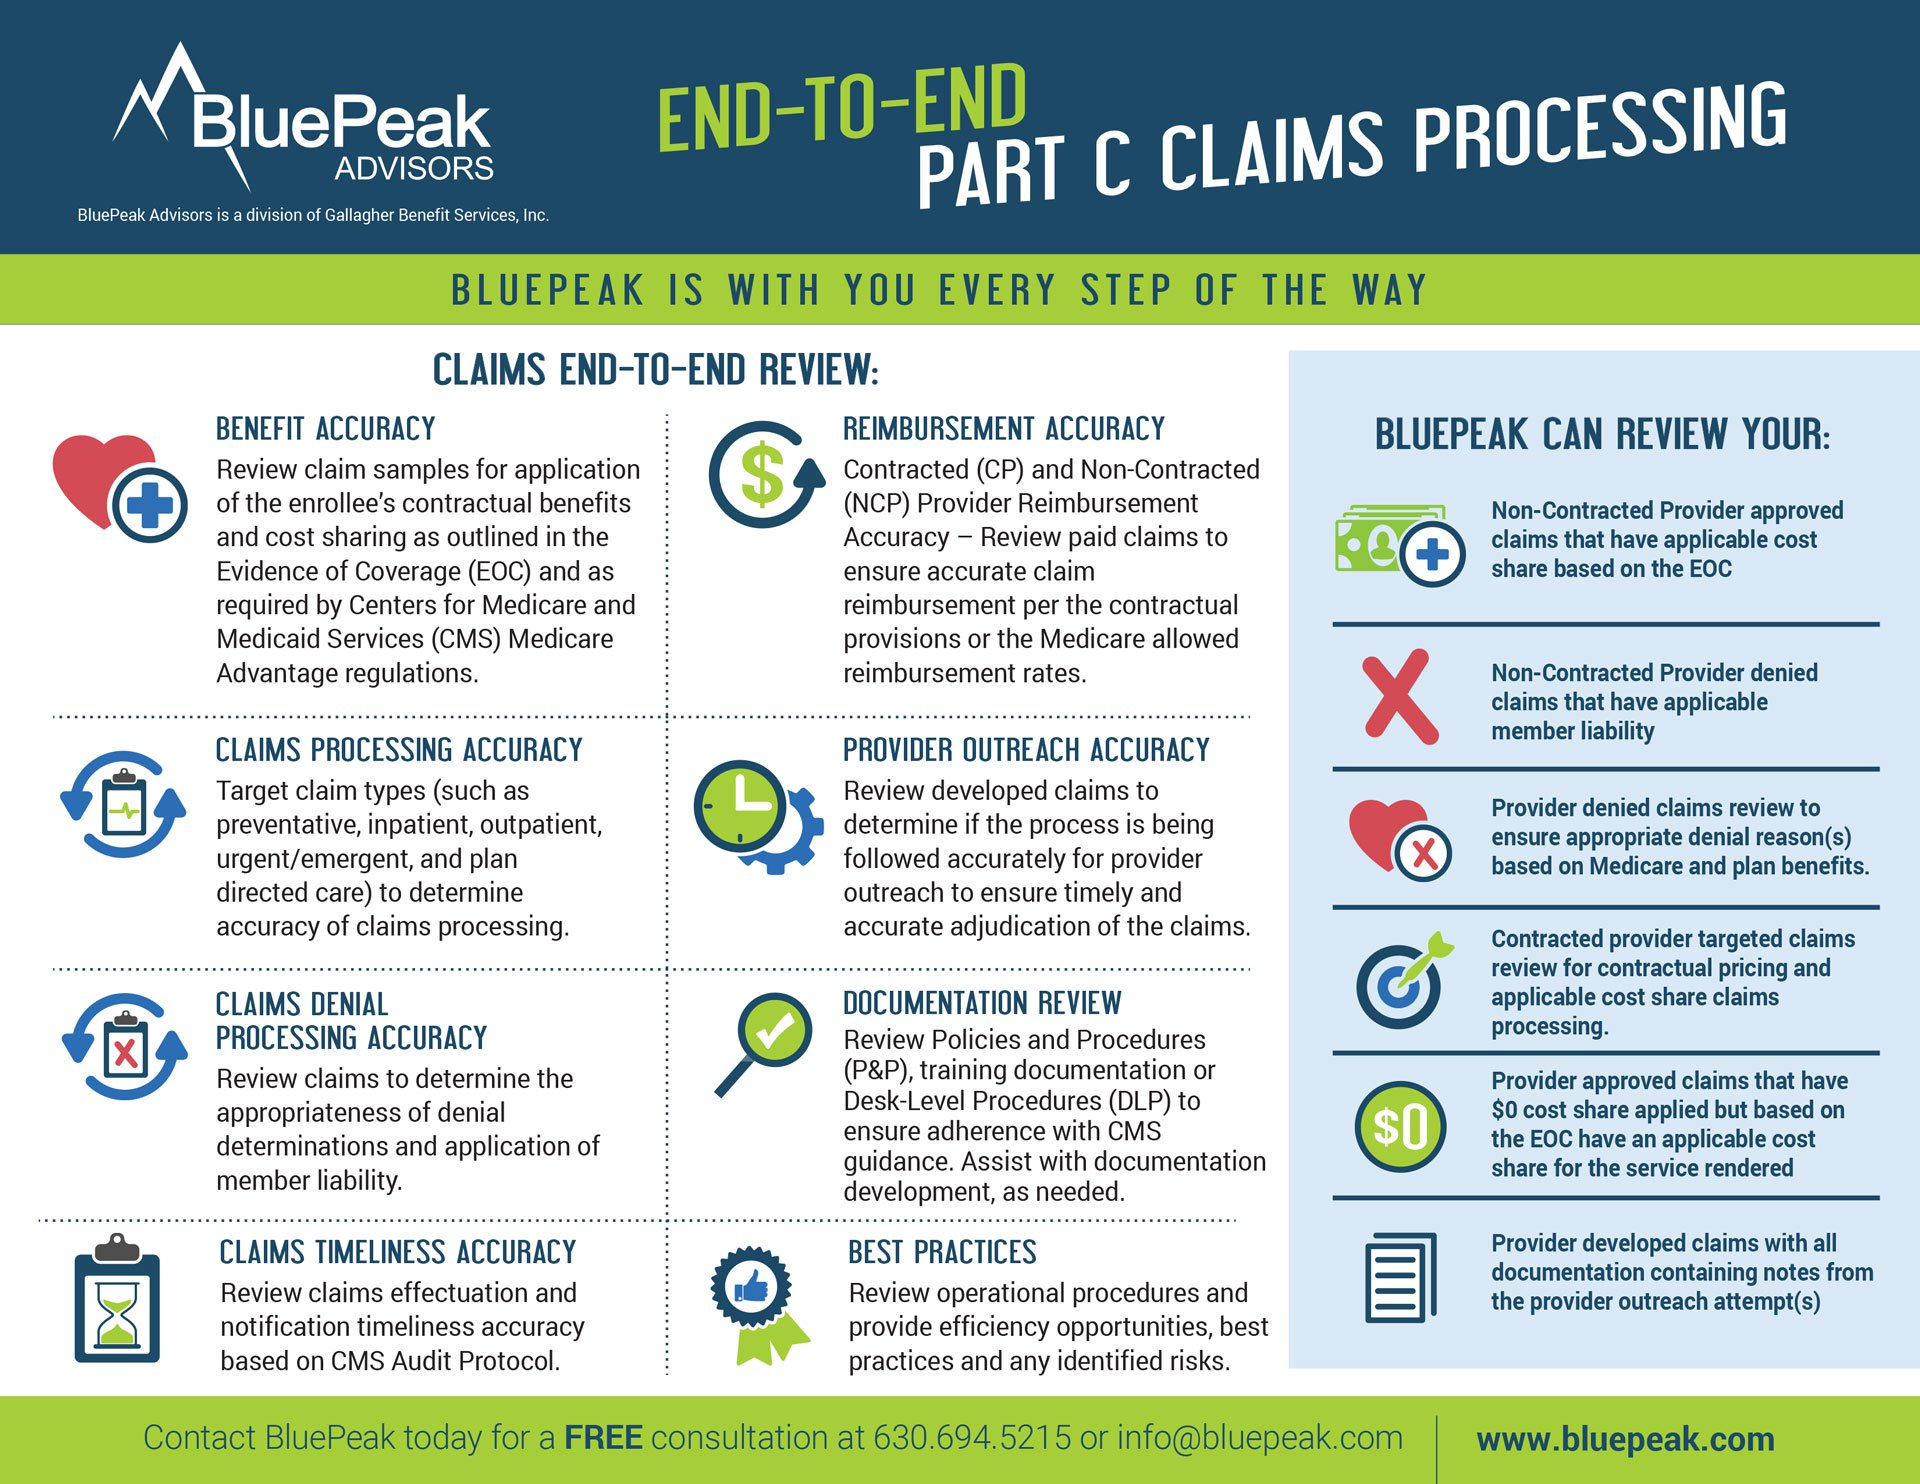 End to End claims processing infographic, download PDF for full text.